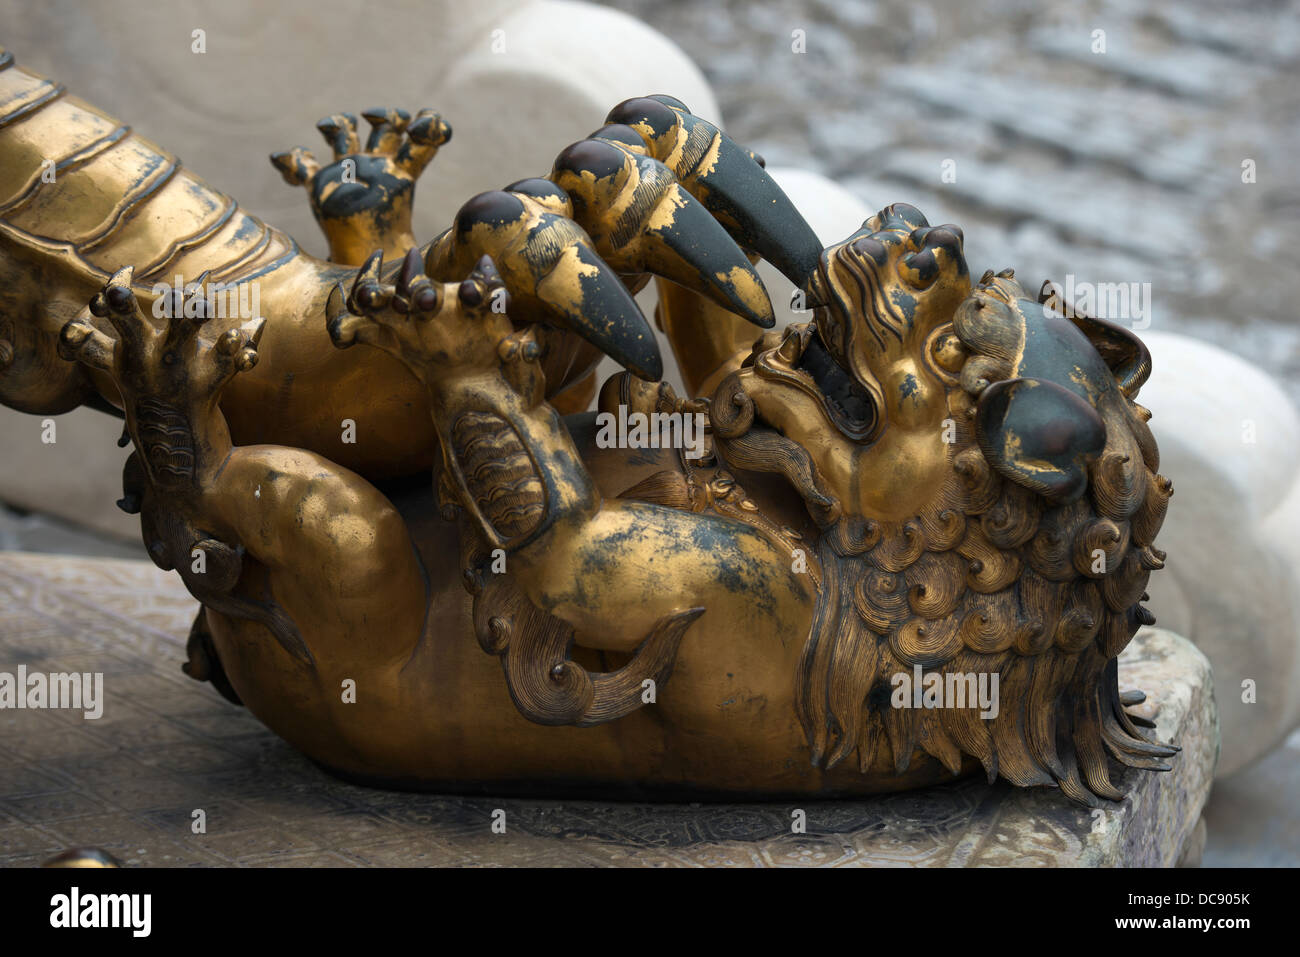 A gold and black sculpture depicting a claw attacking a smaller animal; Beijing, China - Stock Image